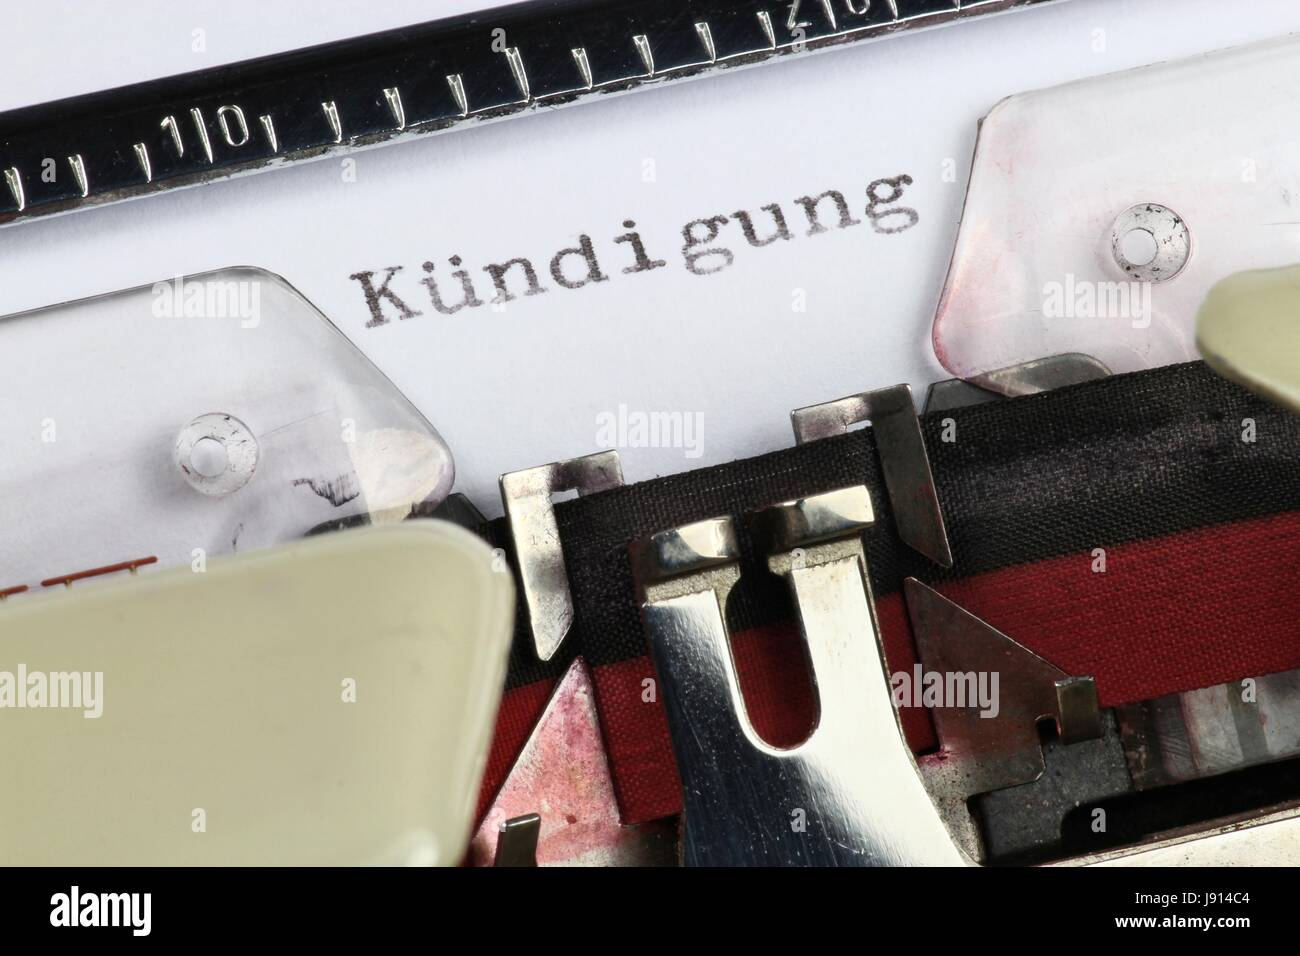 Kündigung (German word for termination) written with old typewriter - Stock Image